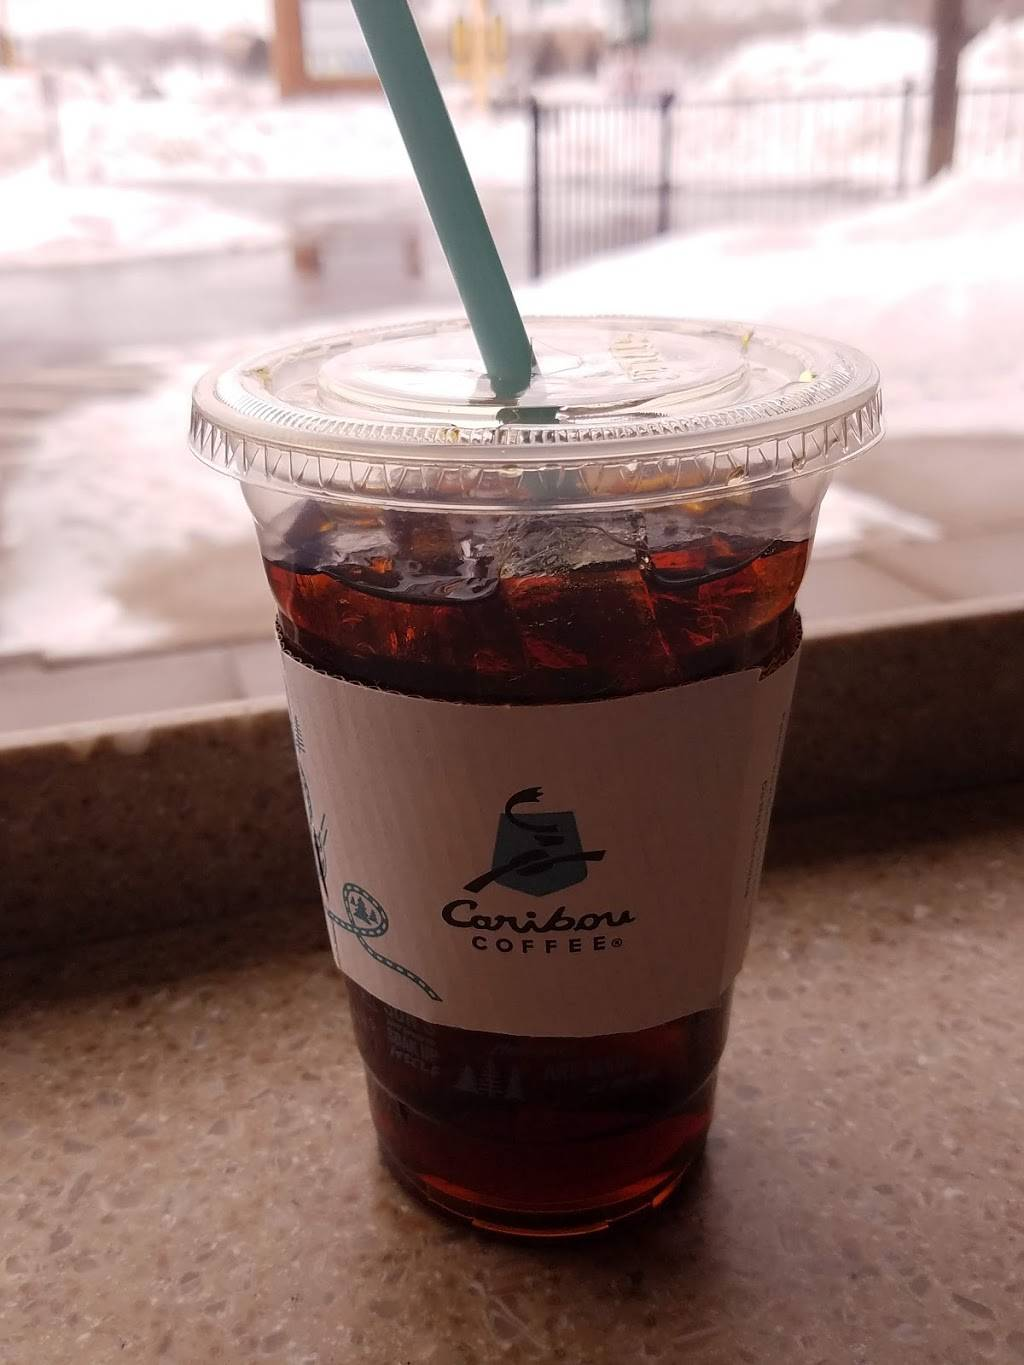 Caribou Coffee - cafe    Photo 5 of 9   Address: 9008 Cahill Ave, Inver Grove Heights, MN 55076, USA   Phone: (651) 455-9786